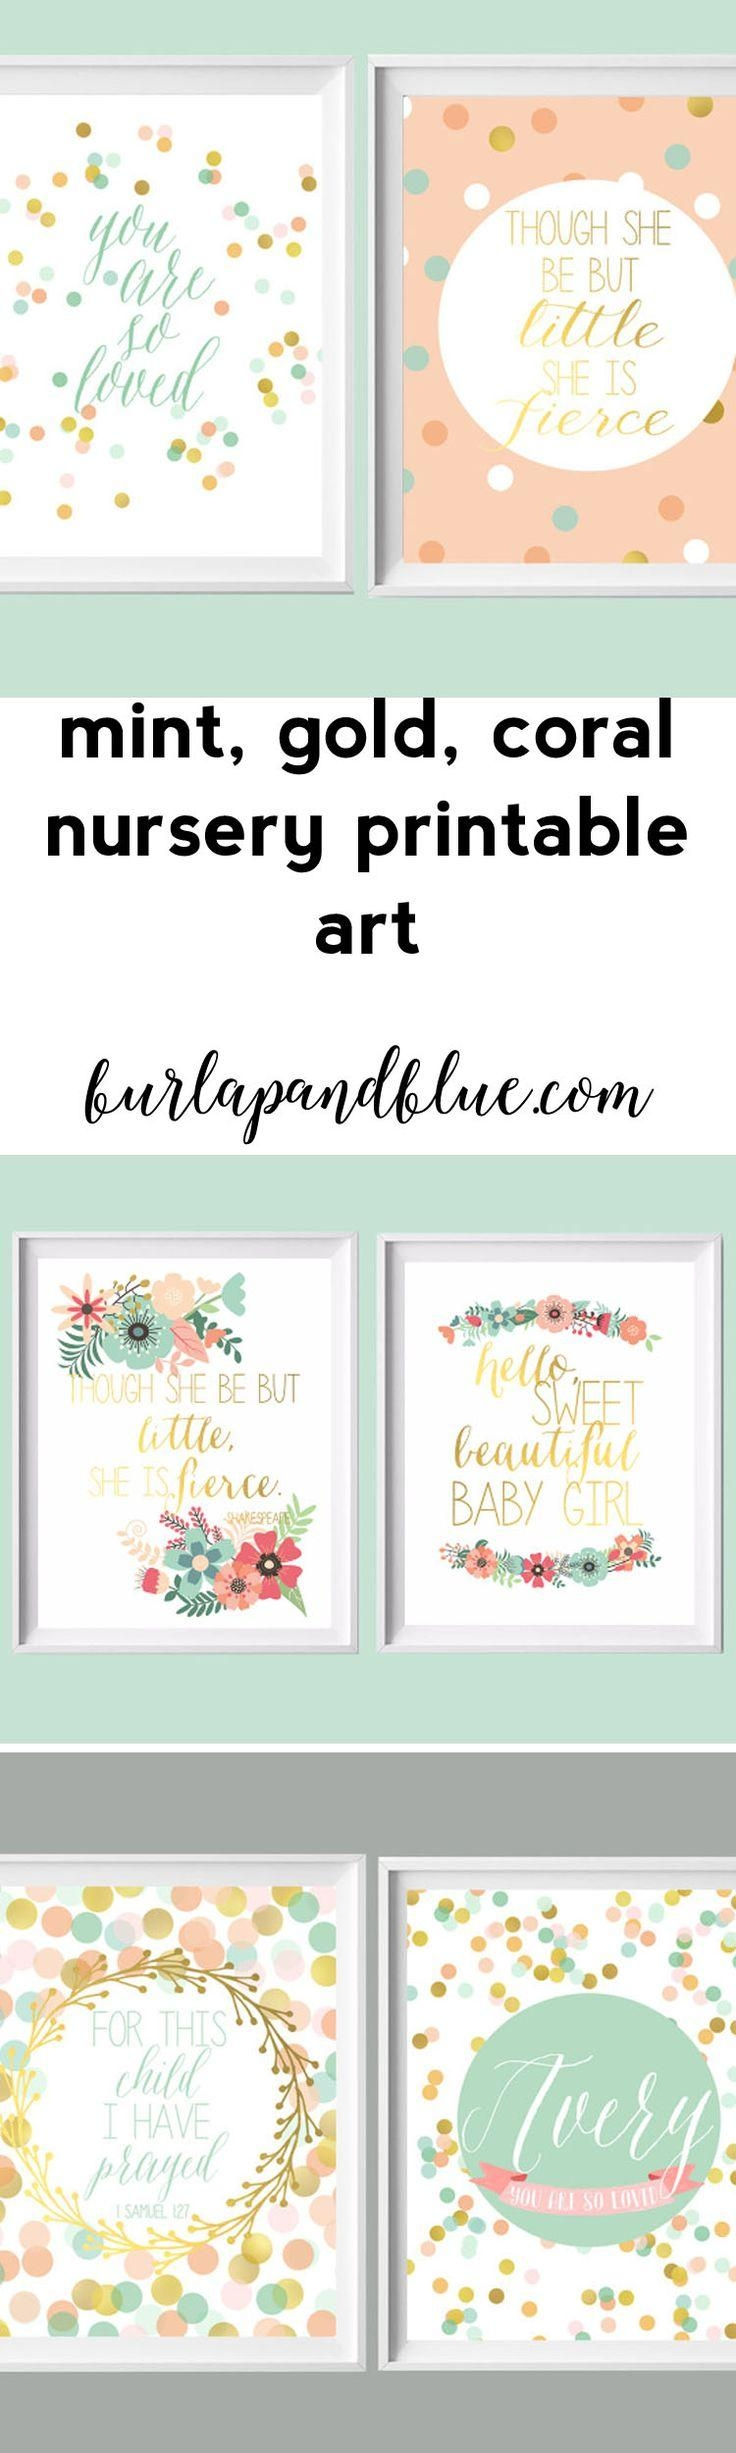 Best 25+ Nursery Wall Art Ideas Only On Pinterest | Baby Nursery In Baby Wall Art (View 8 of 20)